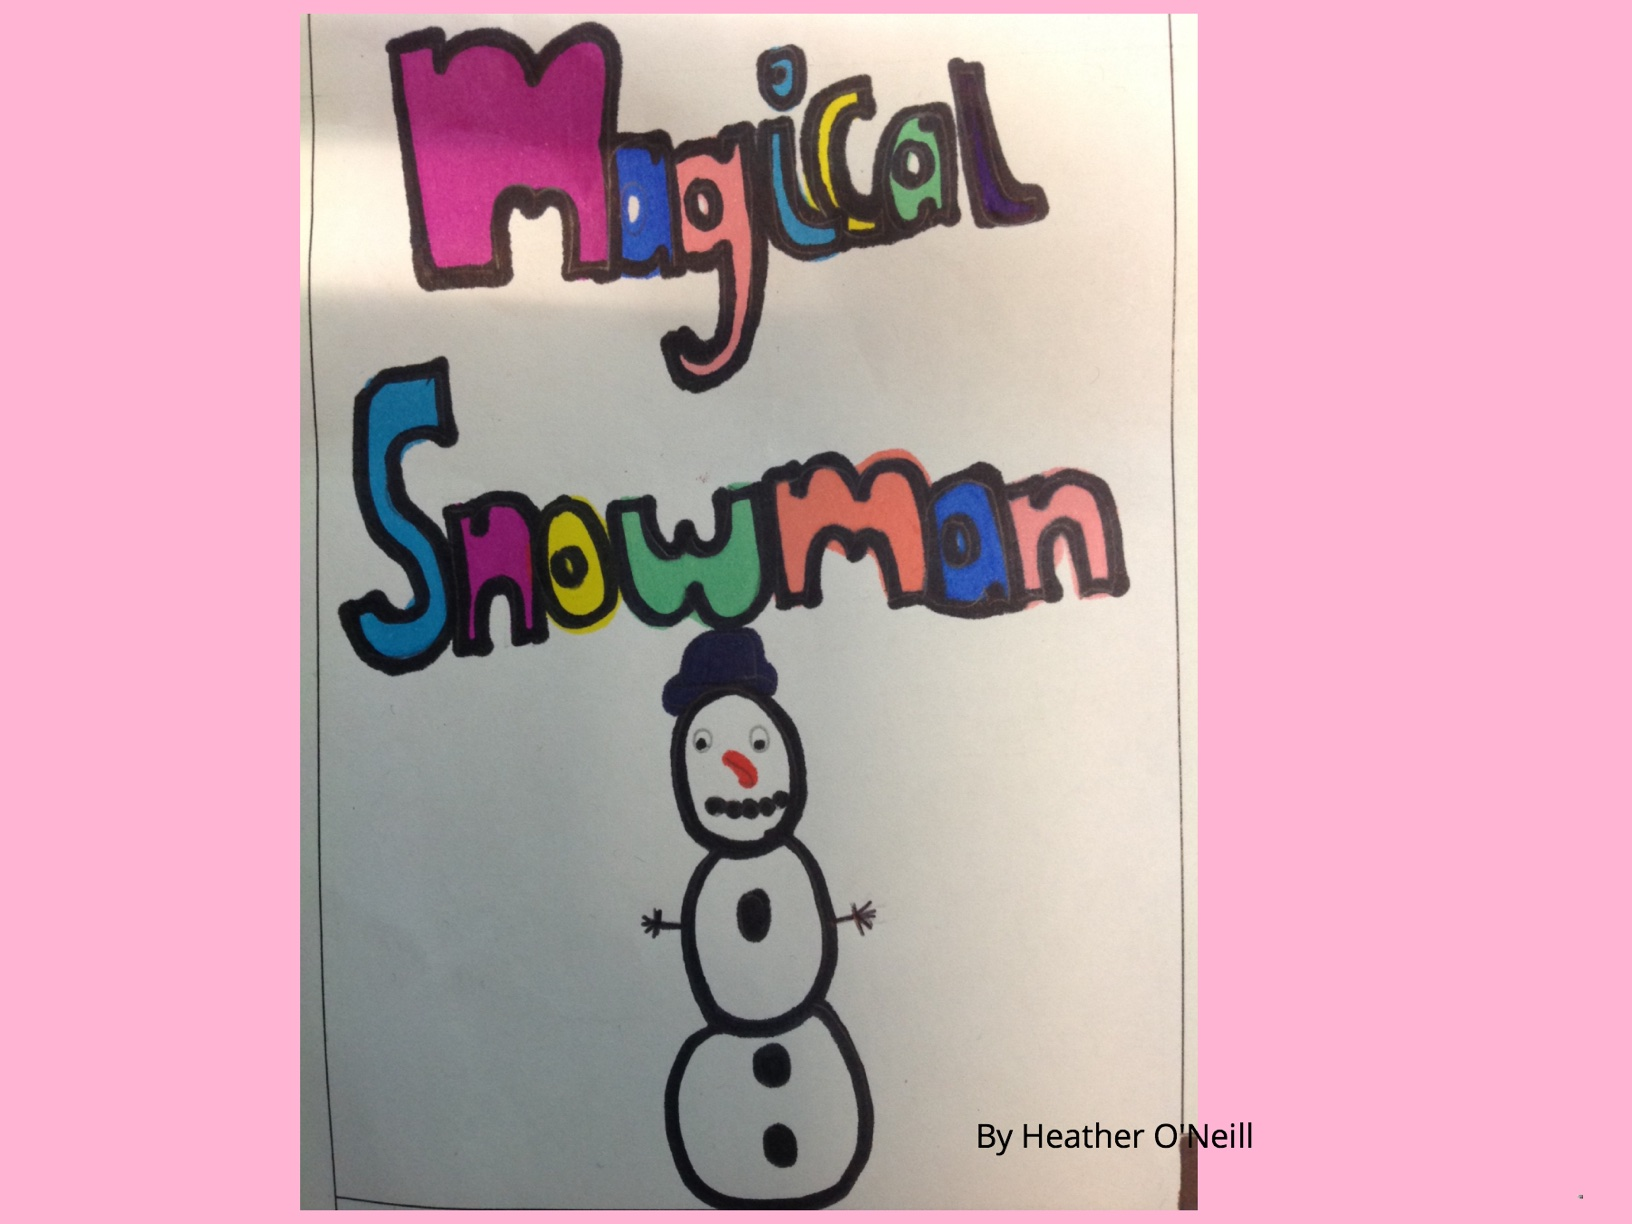 Magical Snowman